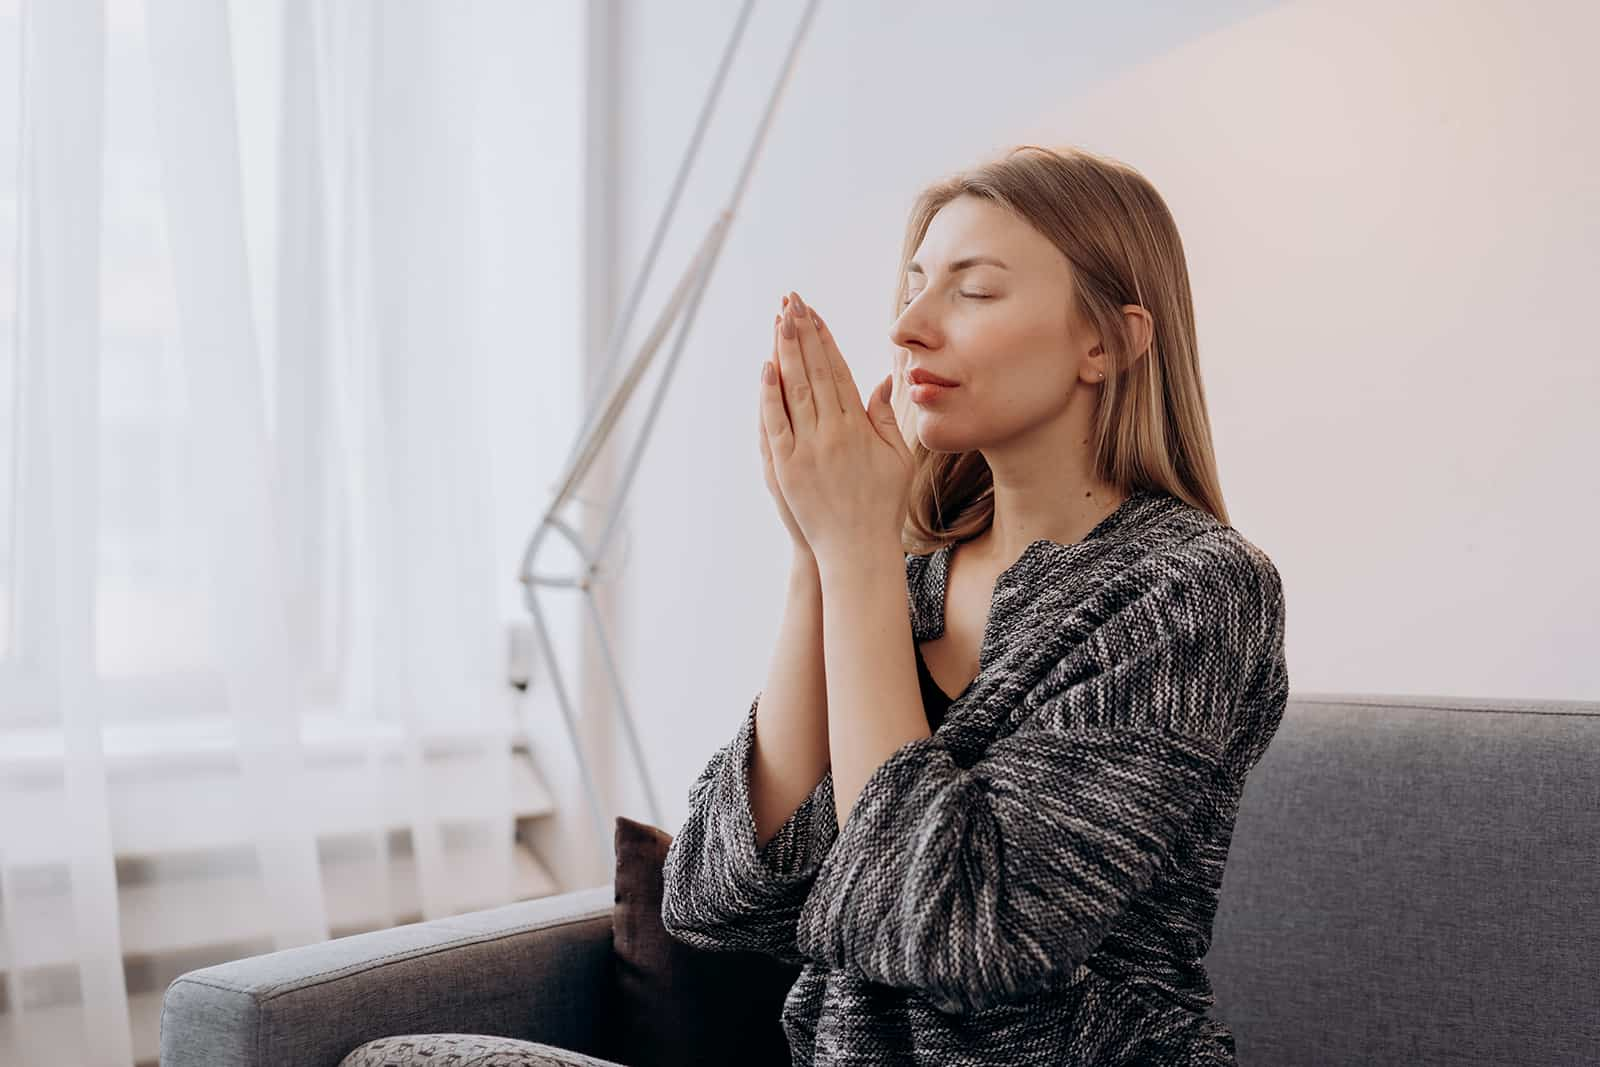 woman praying with eyes closed while sitting on couch